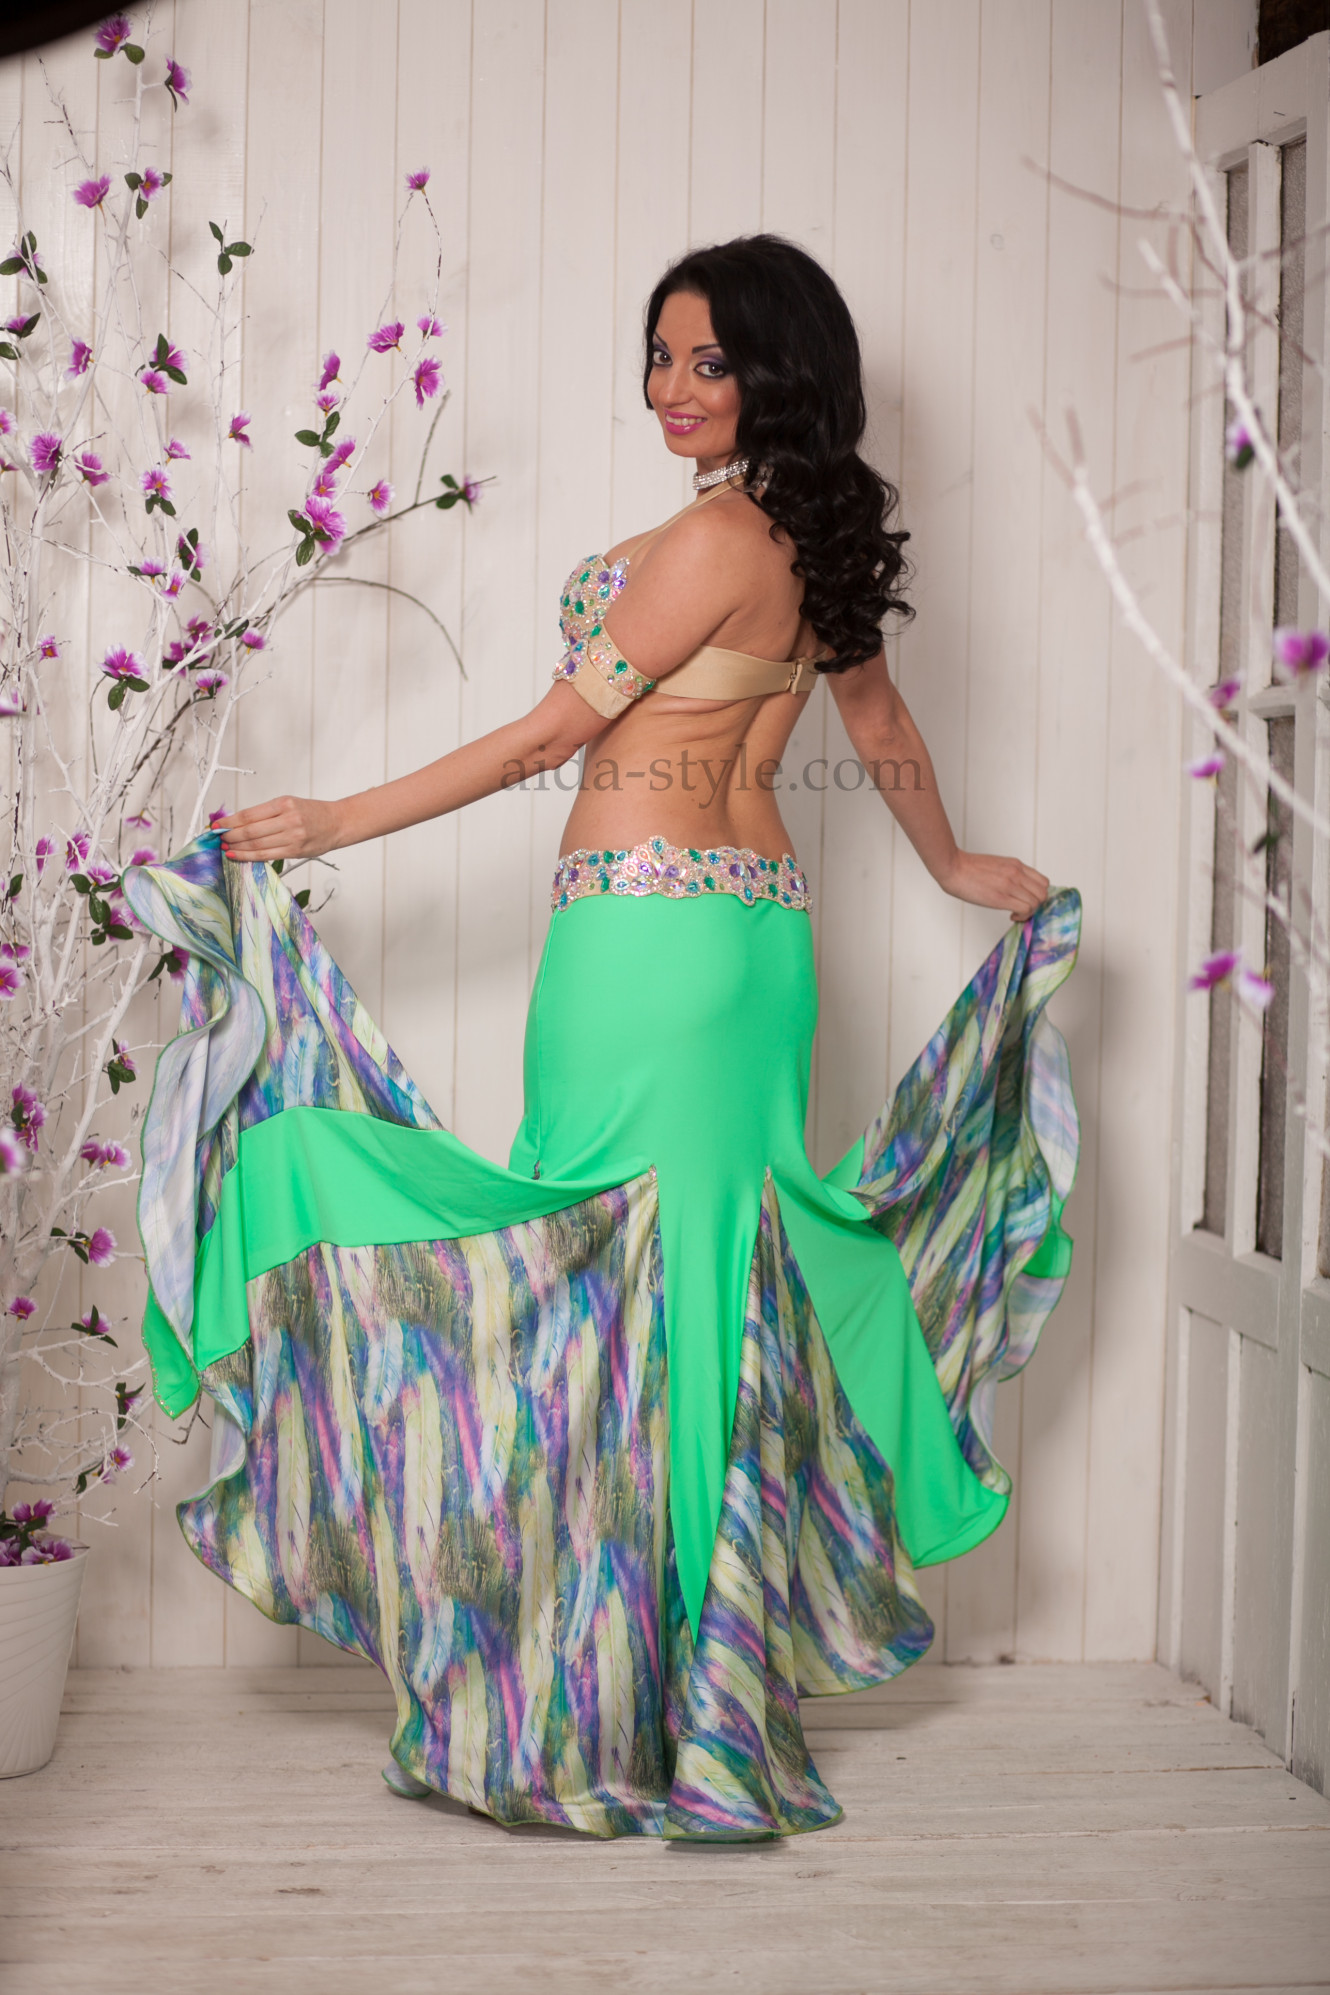 Azure - blue professinal belly dance costume with elastic skirt